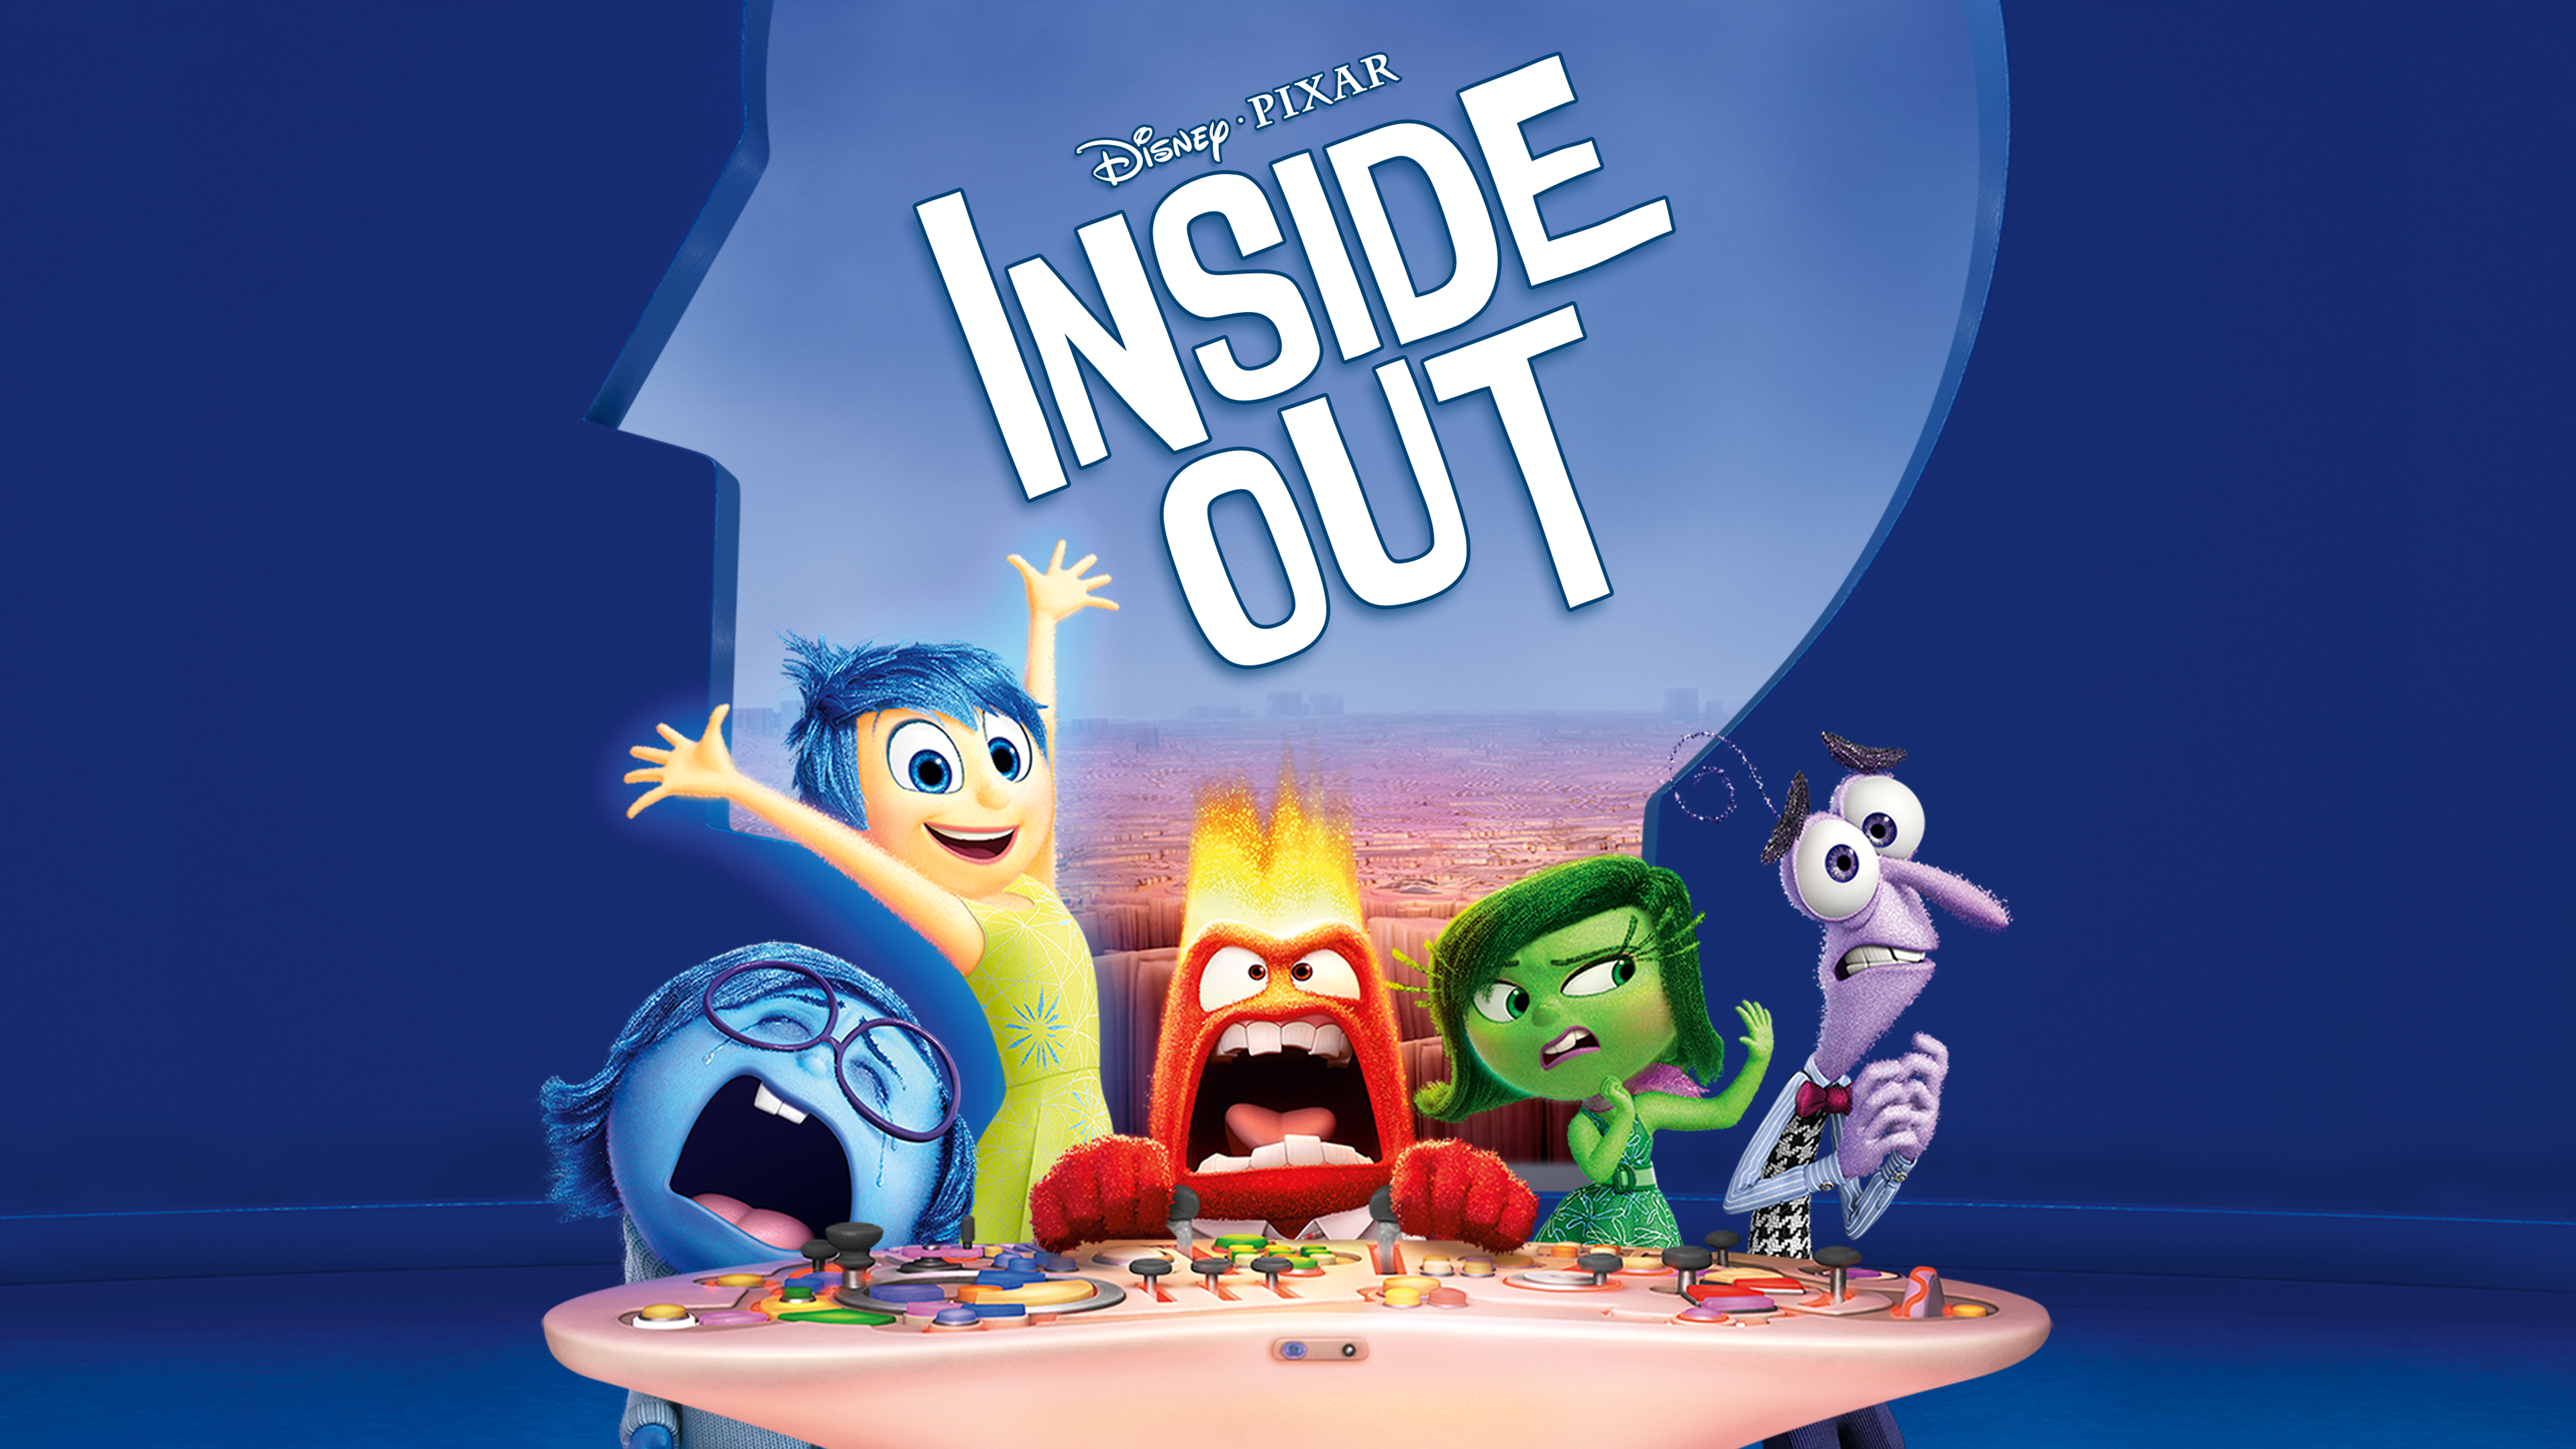 inside out full movie for free no download